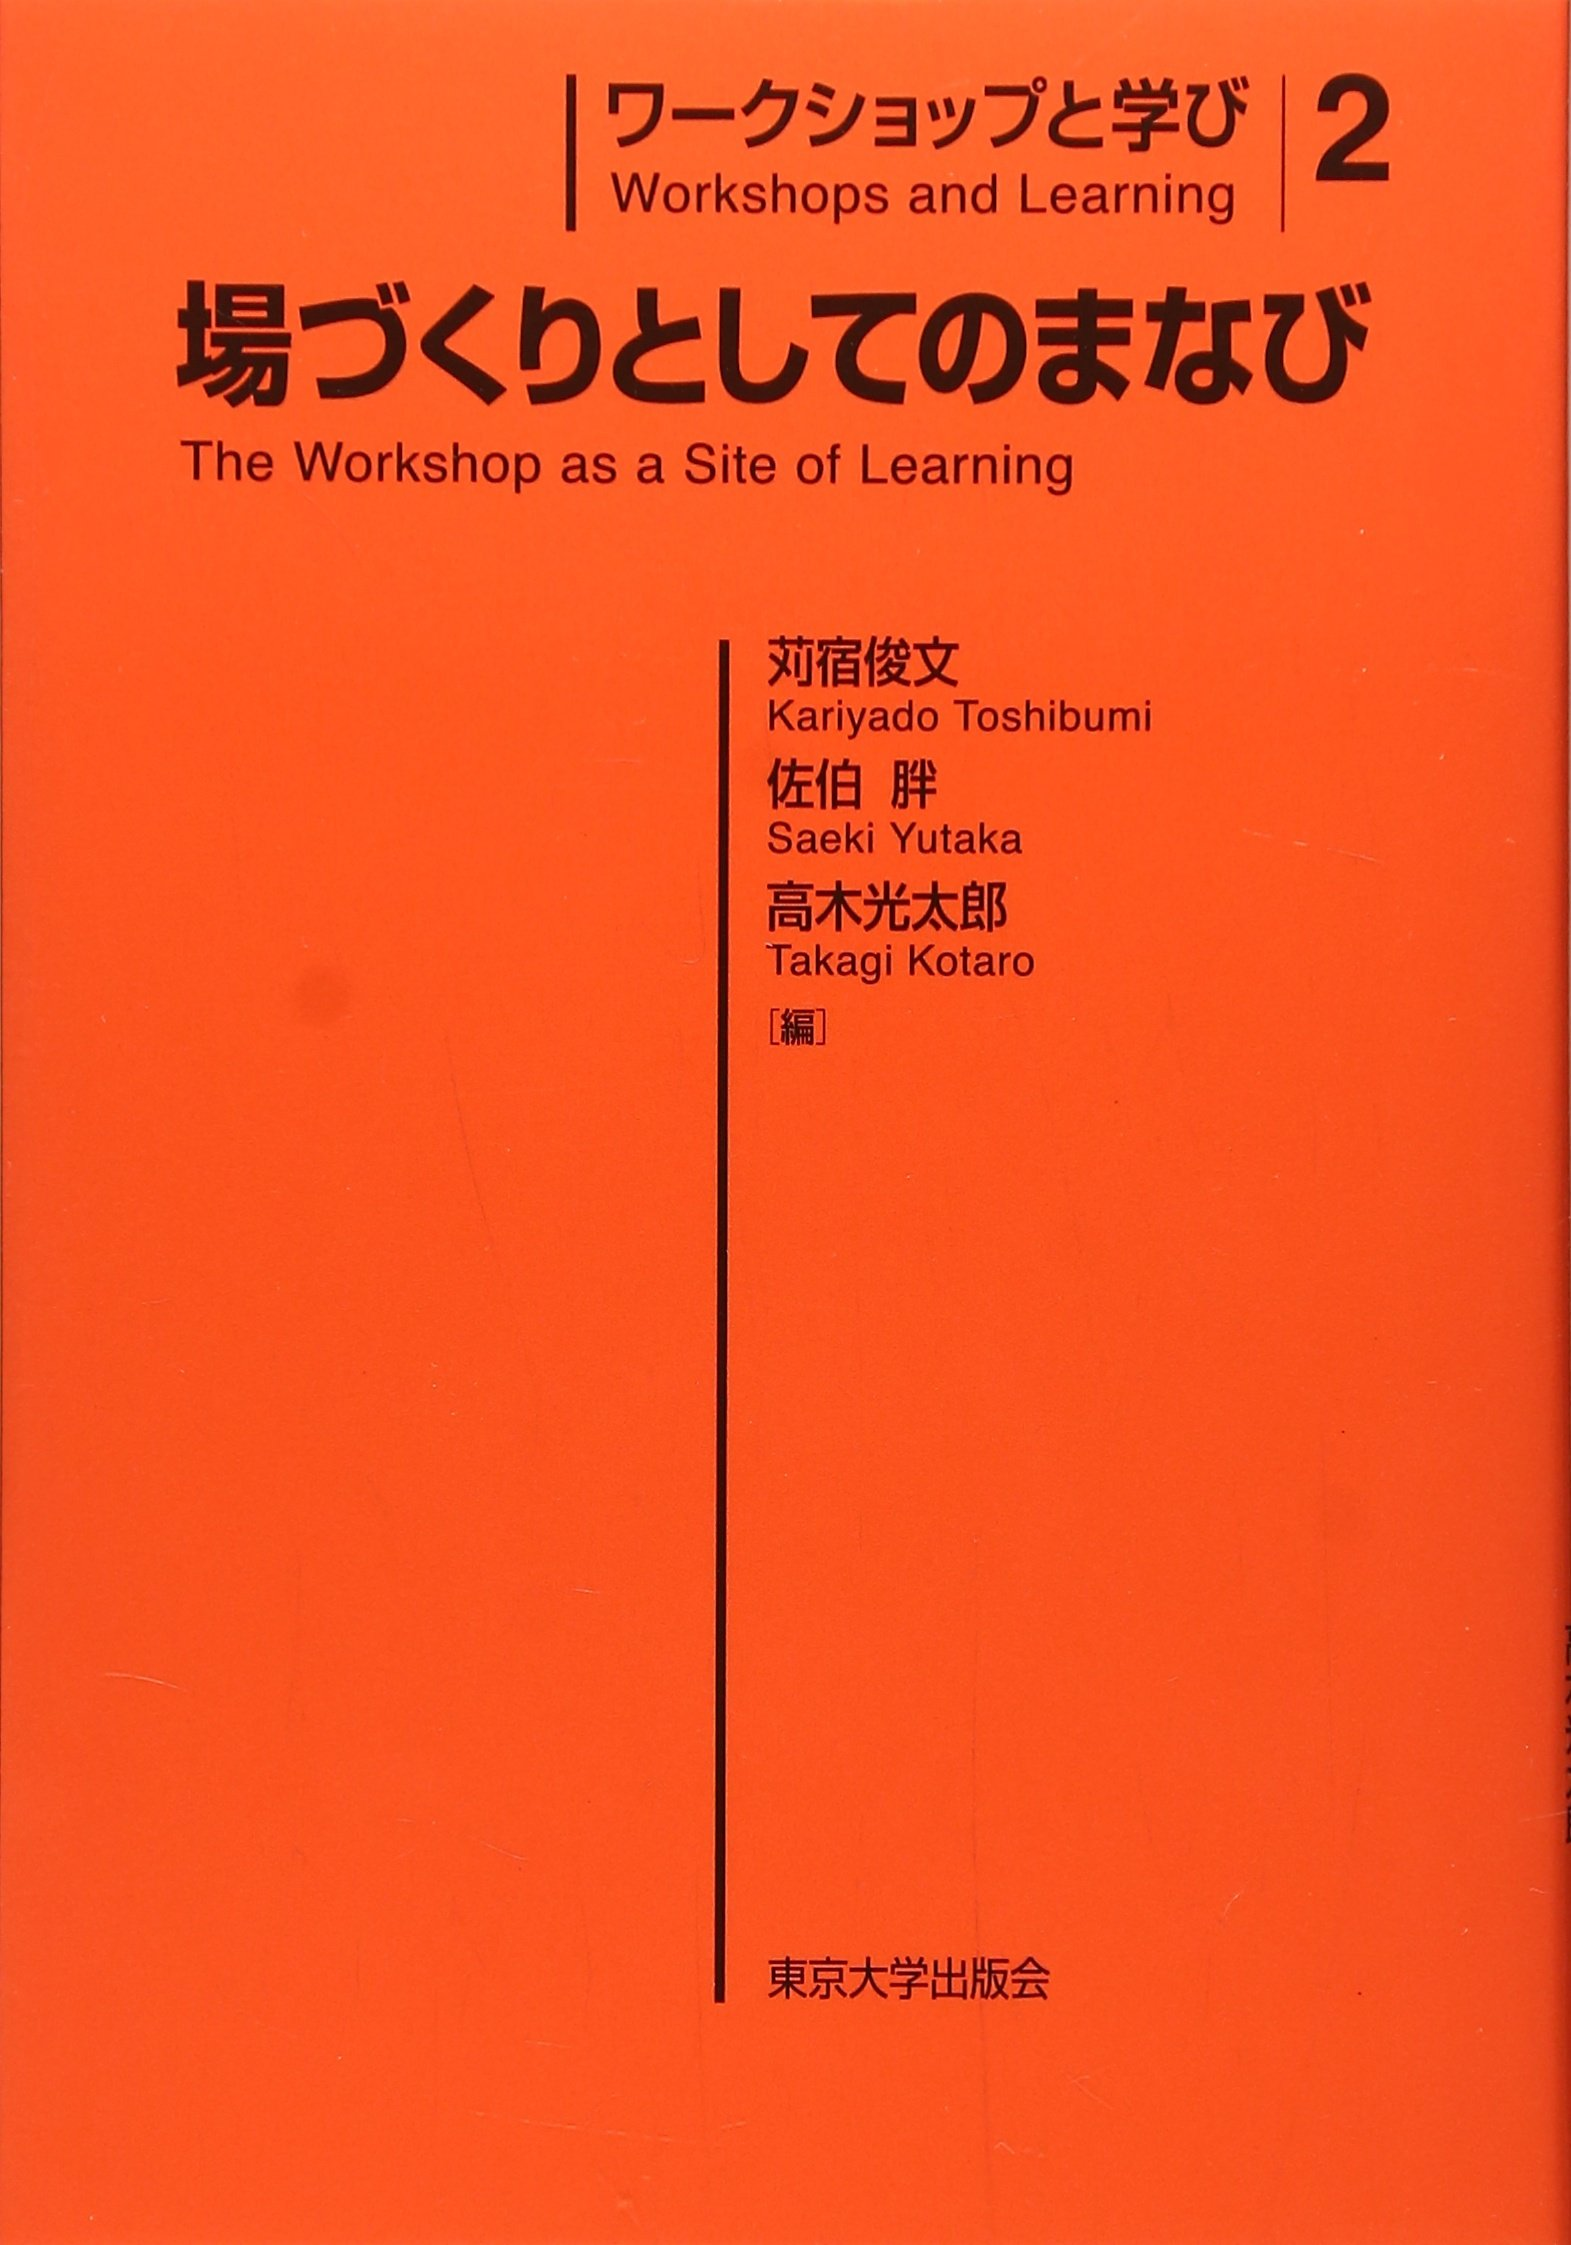 Download Learning as learning two place and the making workshop (2012) ISBN: 4130530828 [Japanese Import] PDF